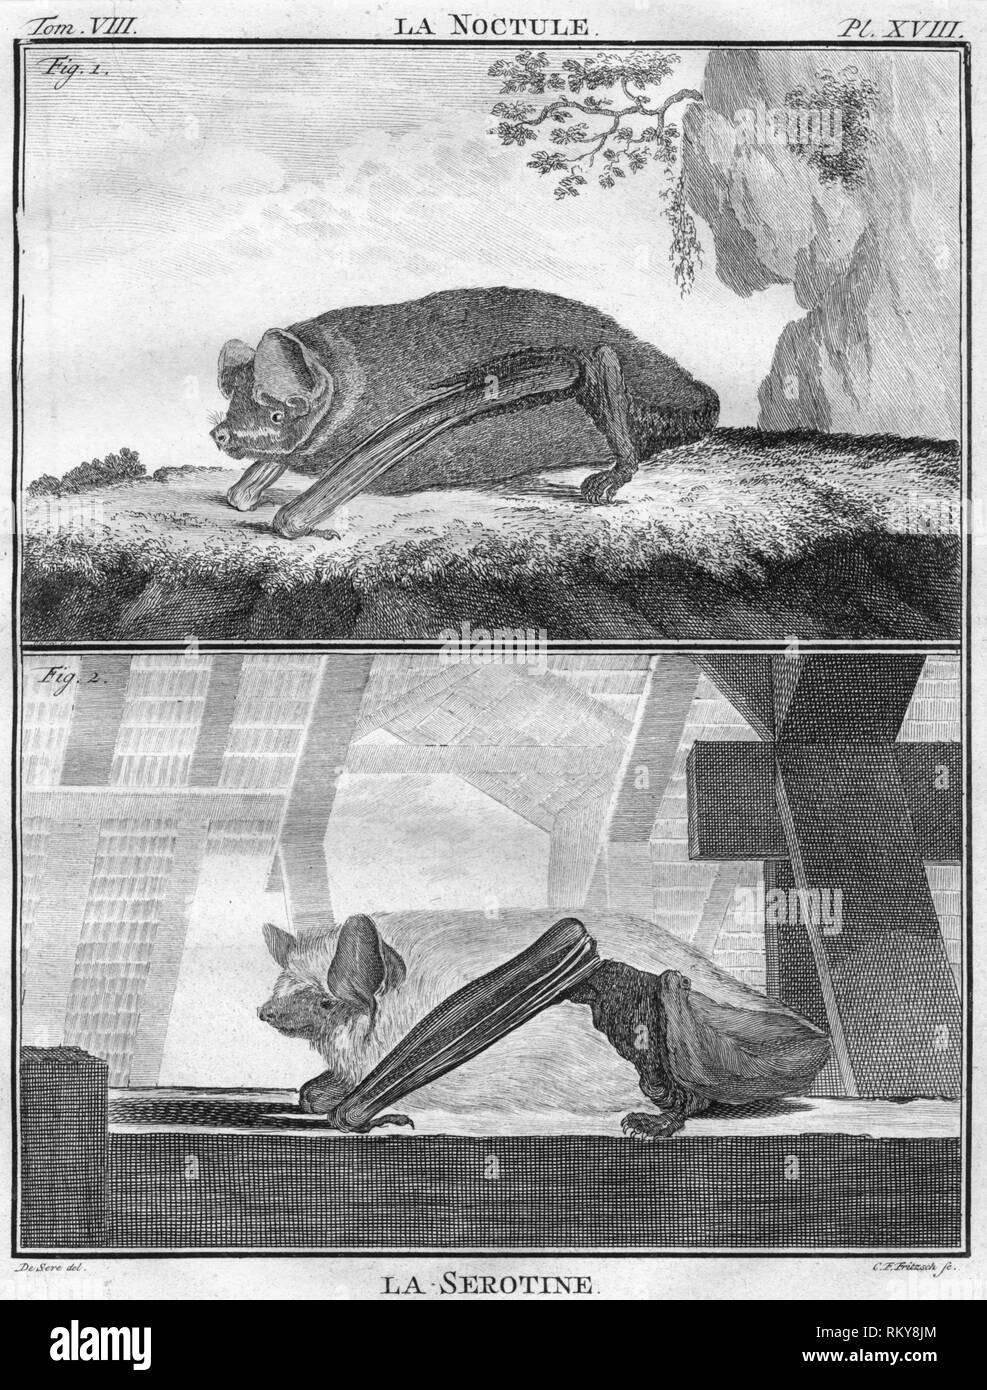 """'La Noctule & La Serotine', c1763. The Common noctule bat and the serotine bat. The """"Histoire Naturelle, générale et particulière, avec la description du Cabinet du Roi"""", (Natural History, General and Particular, with a Description of the King's Cabinet) was written 1749-1804 by the Comte de Buffon, and was continued after his death. It was a monumental work in multiple volumes, and covered what was known of the 'natural sciences' at the time, including physics, chemistry and technology as well as the natural history of animals. - Stock Image"""